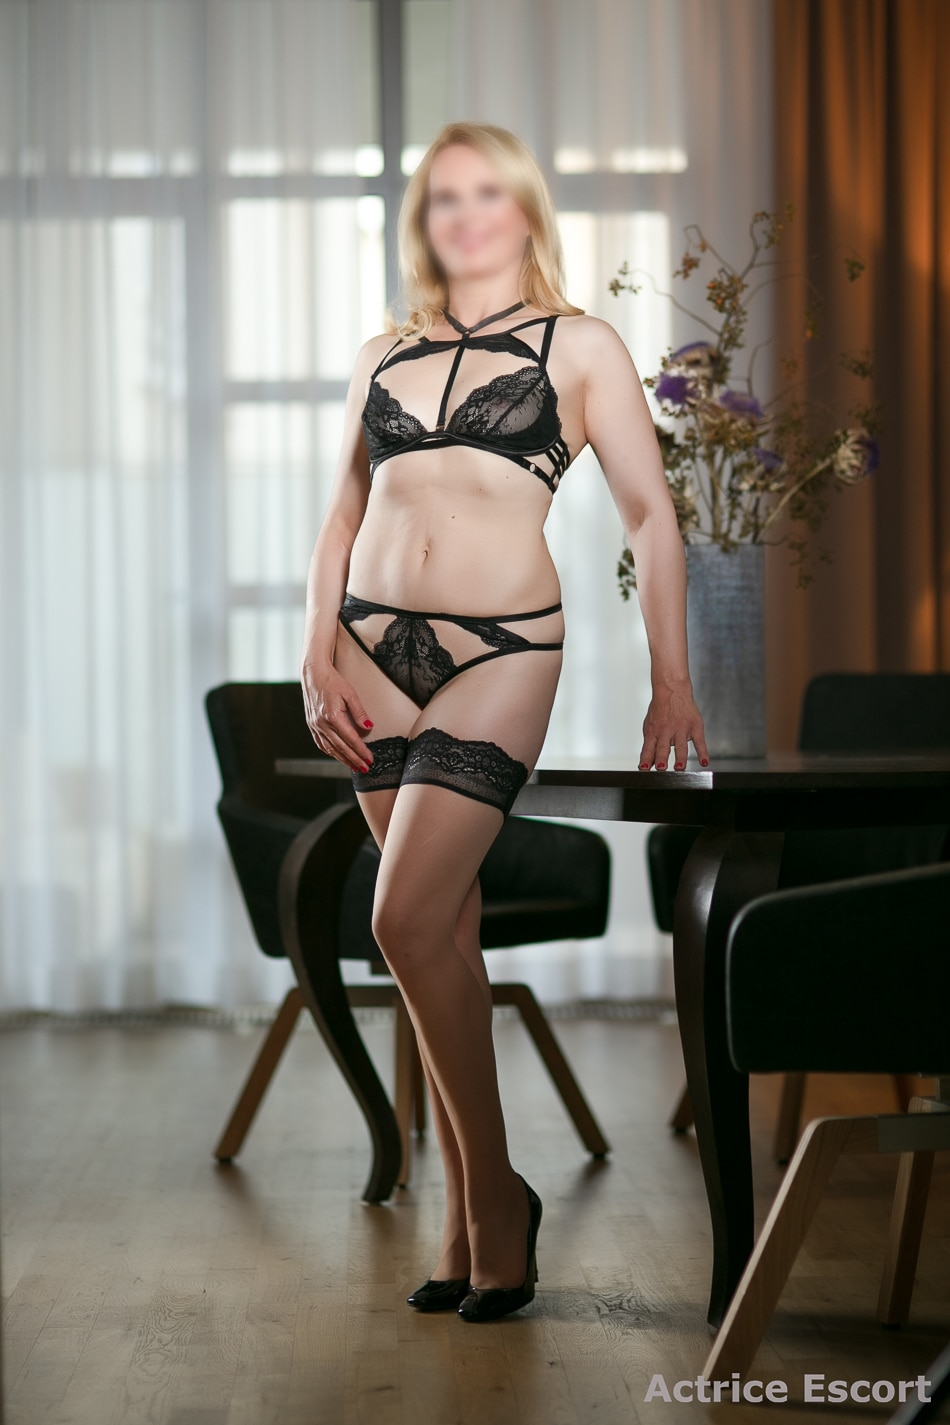 Claire Escortservice Berlin%2819%29